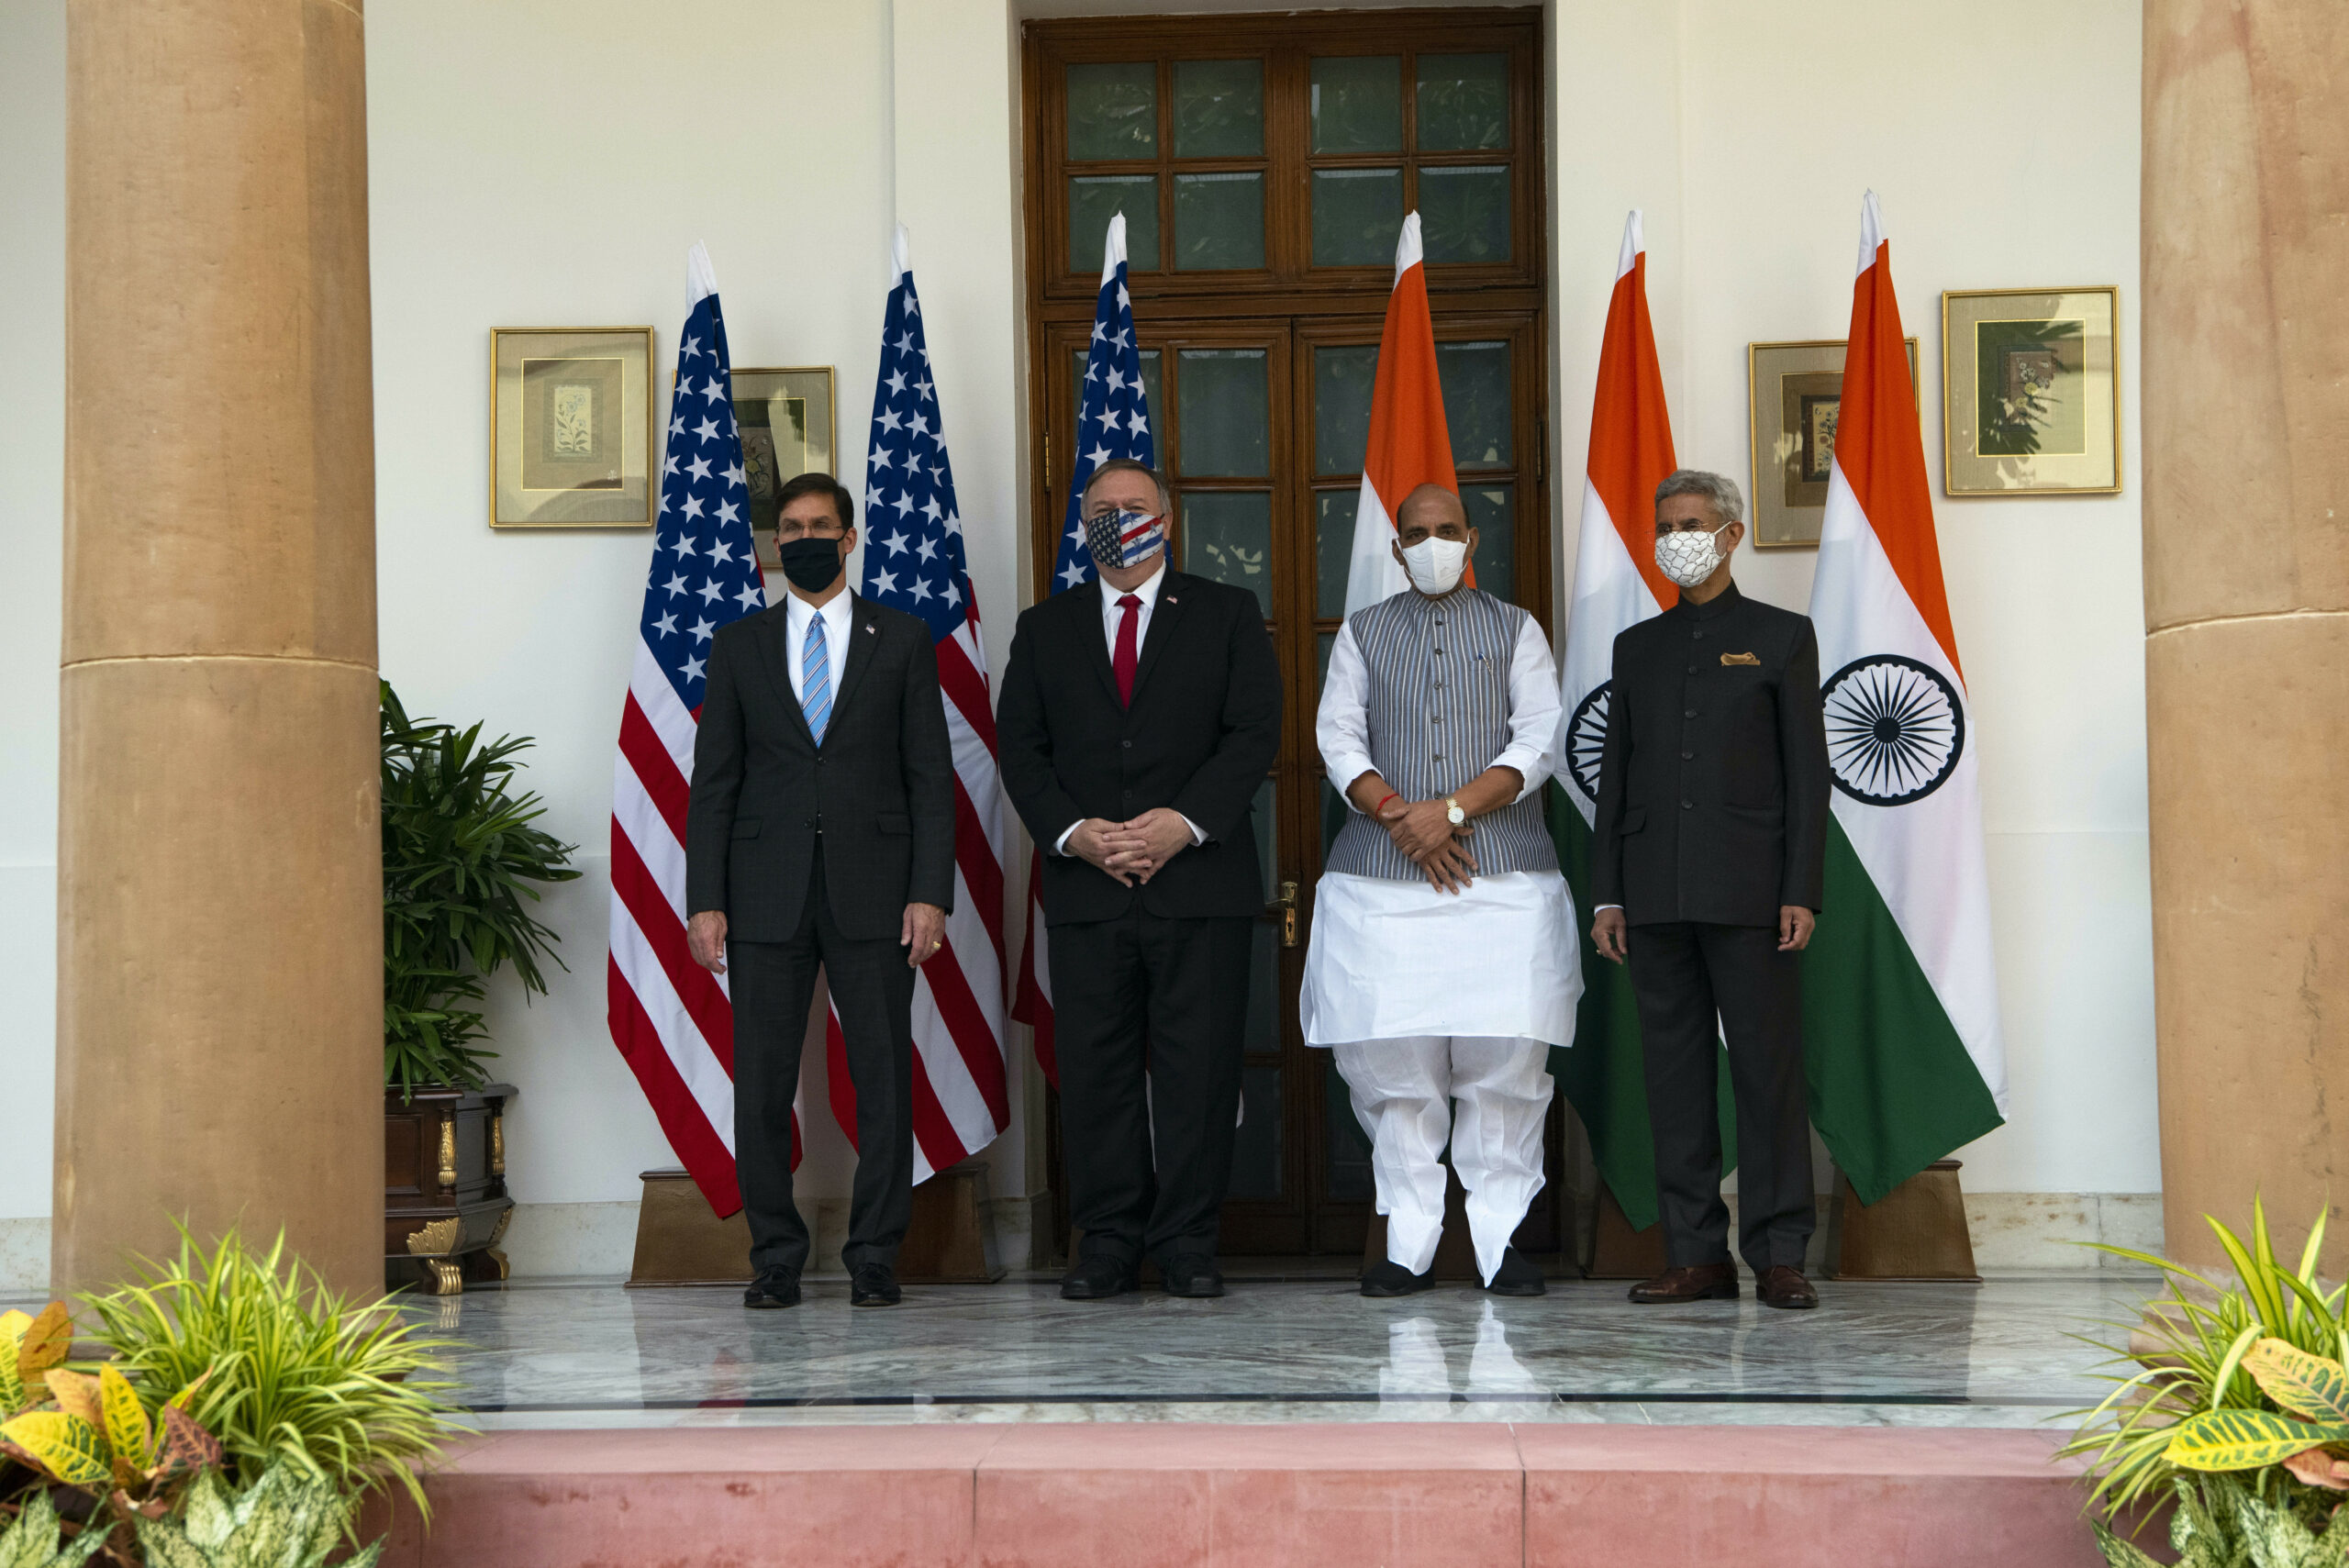 Defense Secretary Dr. Mark T. Esper, Secretary of State Mike Pompeo, Indian Defense Minister Rajnath Singh, and Indian External Affairs Minister Dr. S. Jaishankar pose for a photo before the U.S.-India 2+2 Ministerial, New Delhi, India, Oct. 27, 2020